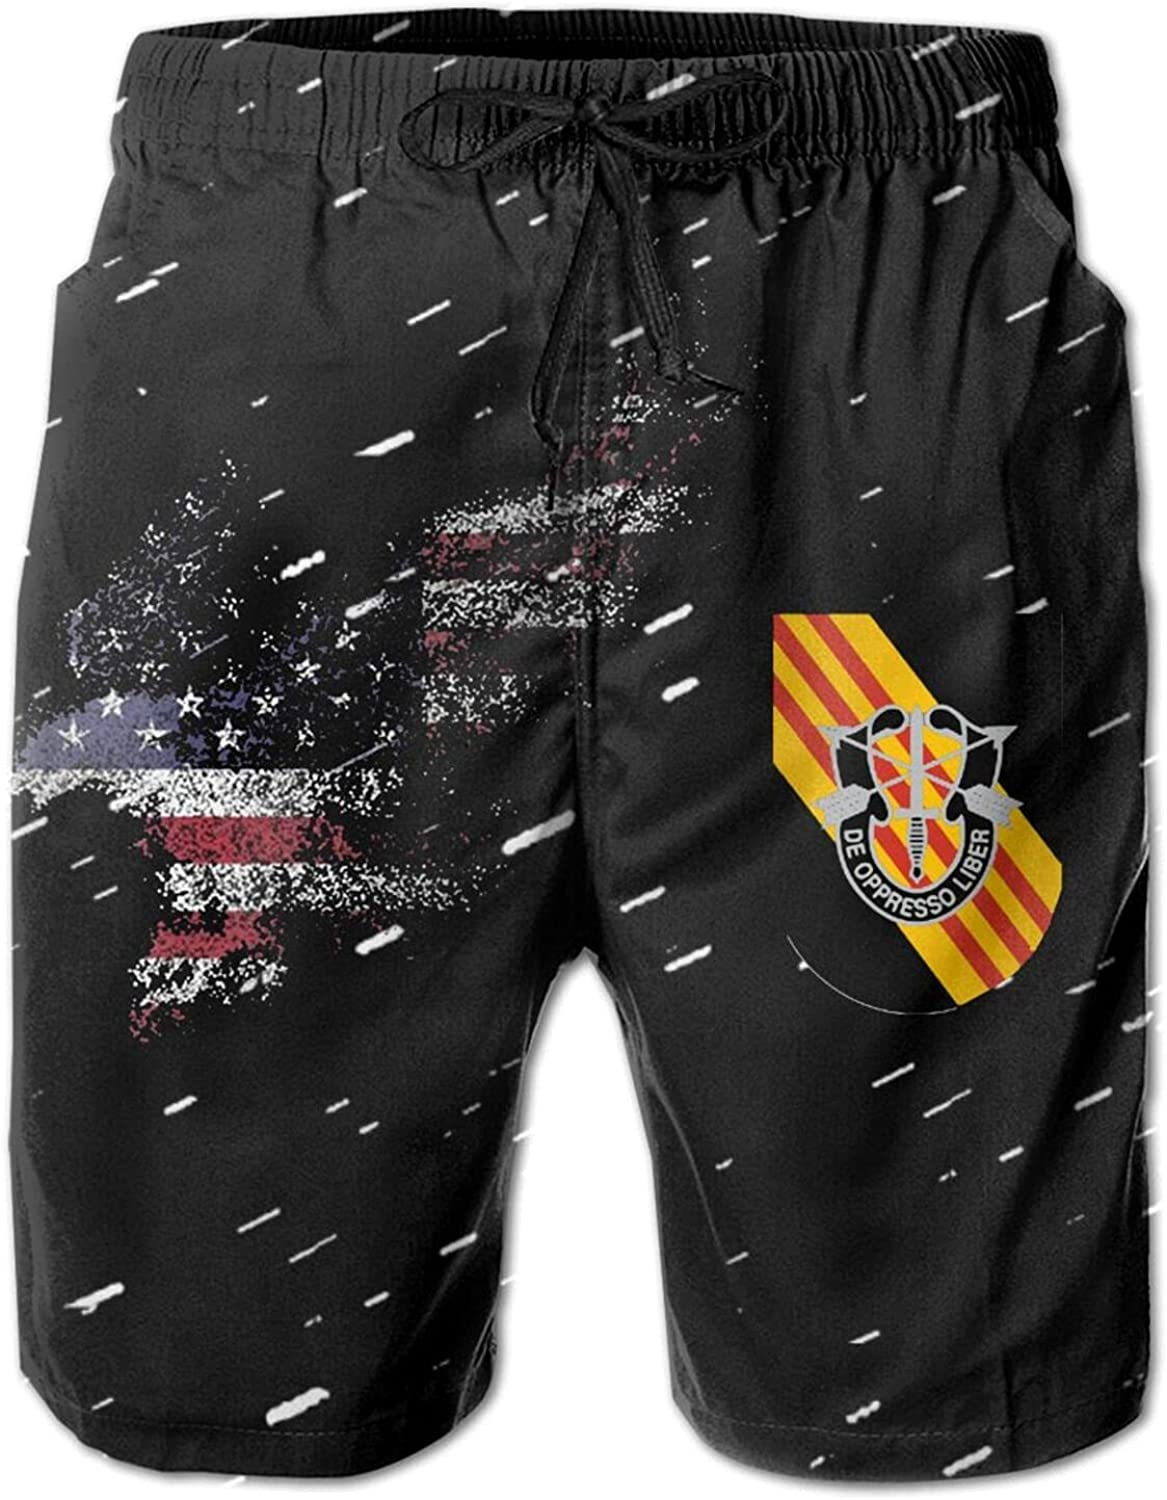 American Branded Year-end annual account goods Eagle 5th Special Forces Men's Group Sports Swim Trunks